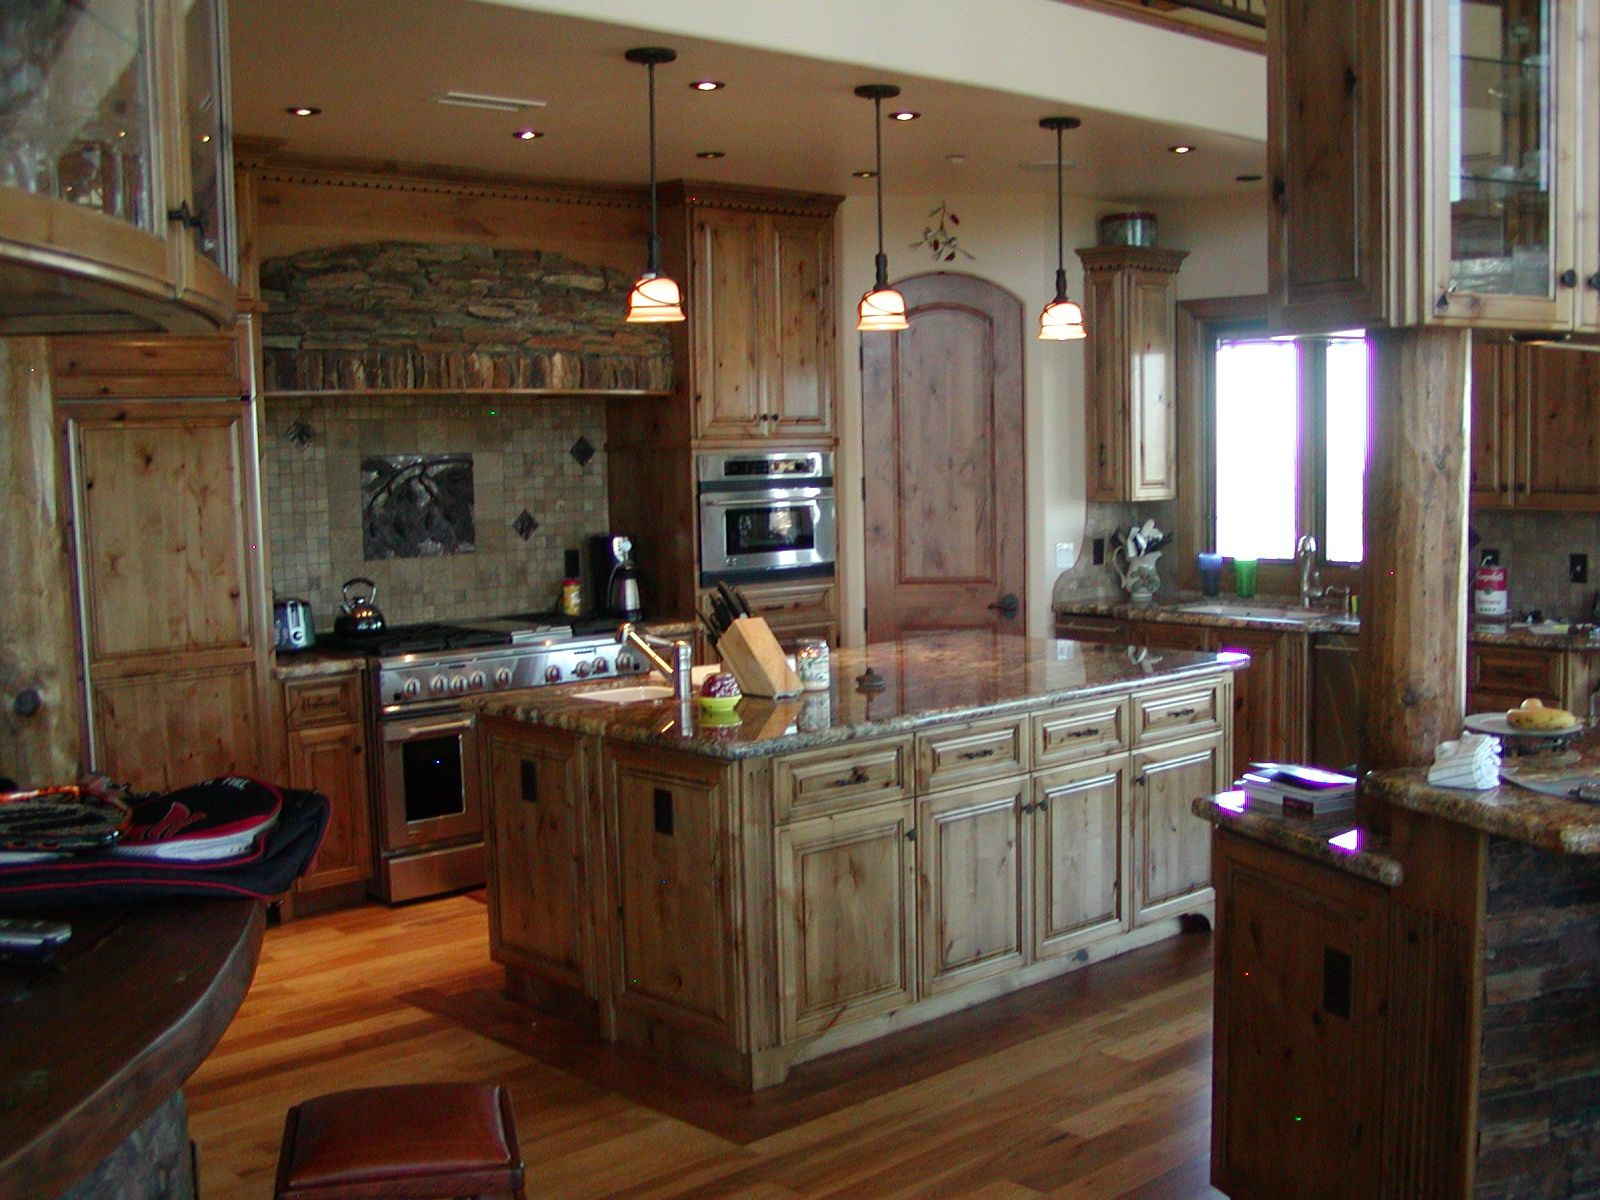 Hand crafted knotty alder custom made kitchen cabinets etc by carlson craft cabinets inc - Custom made cabinet ...